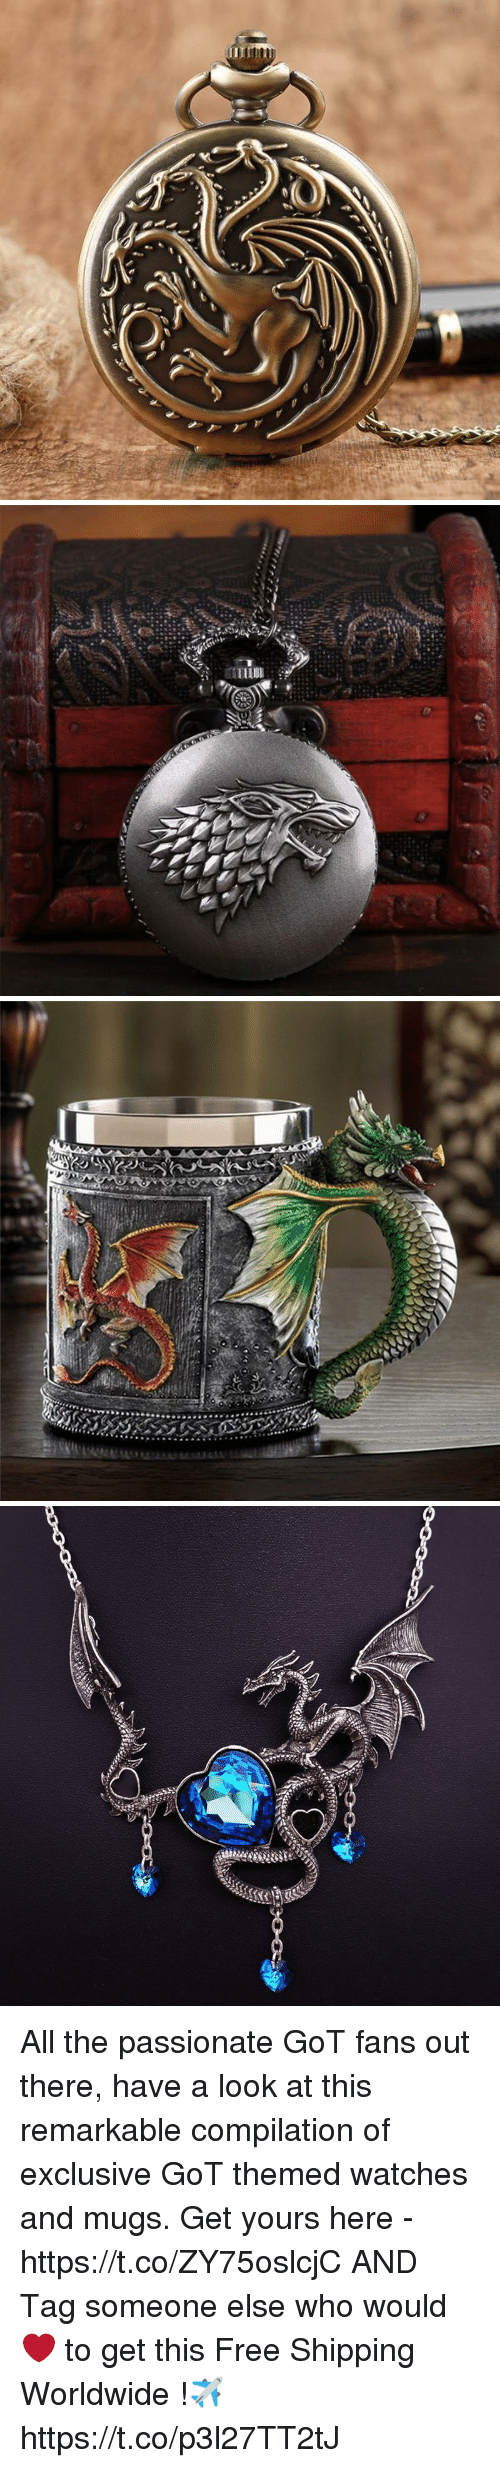 Memes, Free, and Watches: All the passionate GoT fans out there, have a look at this remarkable compilation of exclusive GoT themed watches and mugs.   Get yours here - https://t.co/ZY75oslcjC  AND Tag someone else who would ❤ to get this  Free Shipping Worldwide !✈ https://t.co/p3l27TT2tJ